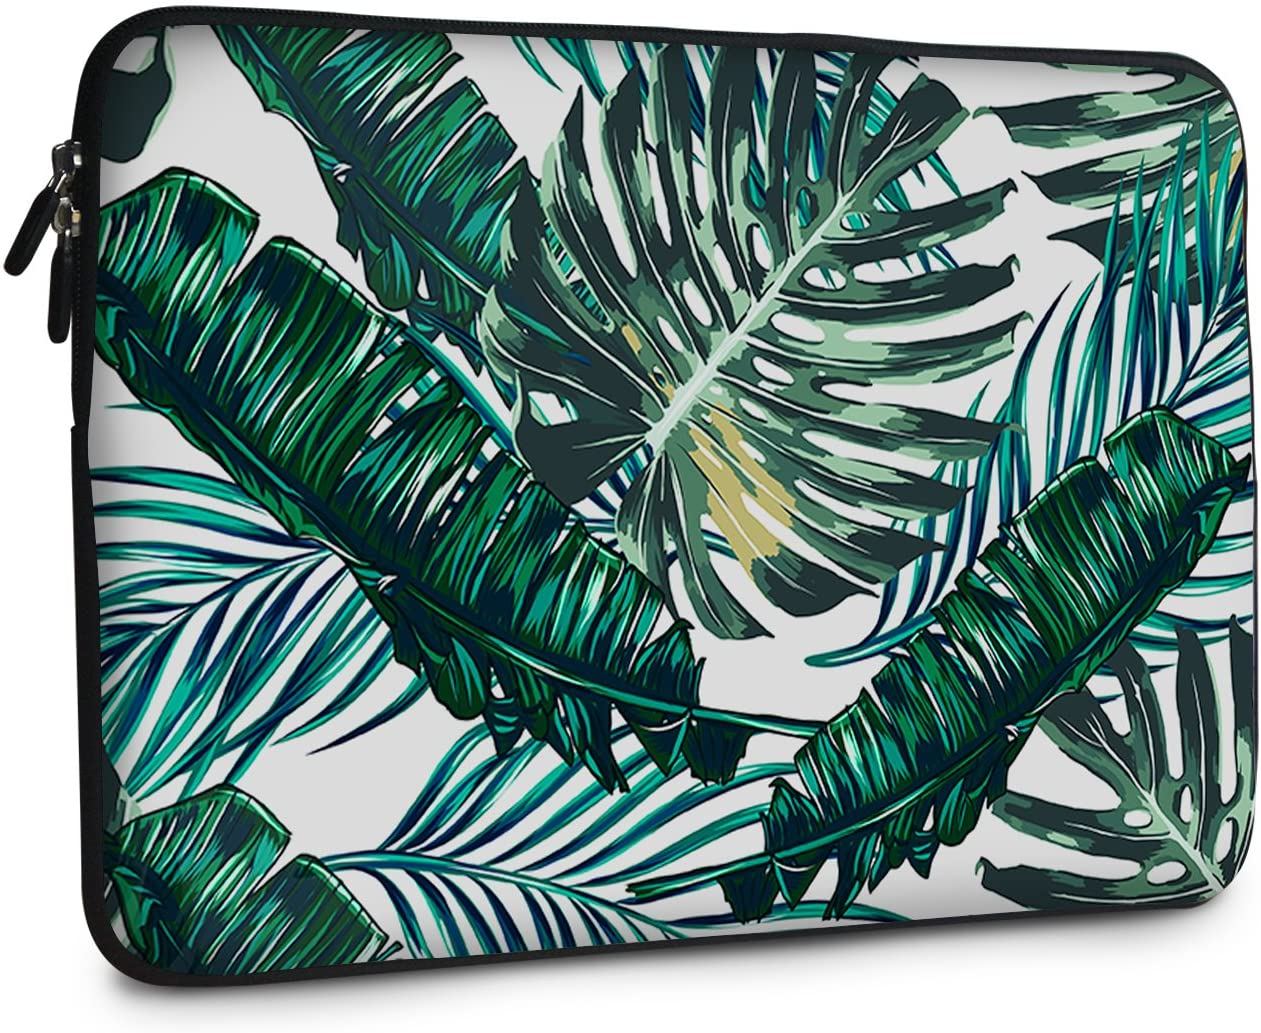 iCasso 13-13.3 inch Laptop Sleeve Bag, Waterproof Shock Resistant Neoprene Notebook Protective Bag Carrying Case Compatible MacBook Pro/MacBook Air - Palm Leaves